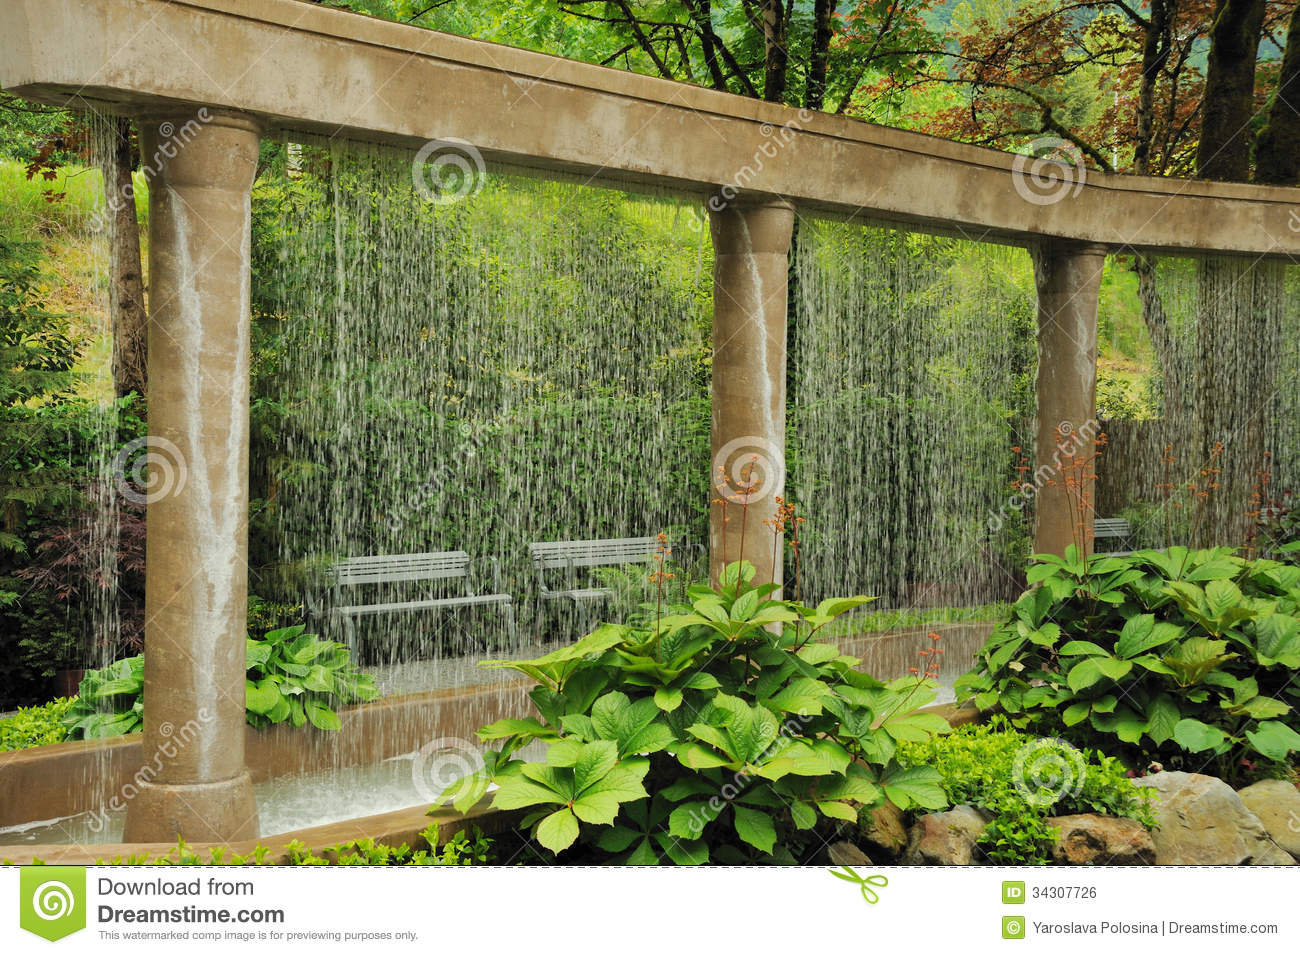 Decorative Water Wall In The Garden